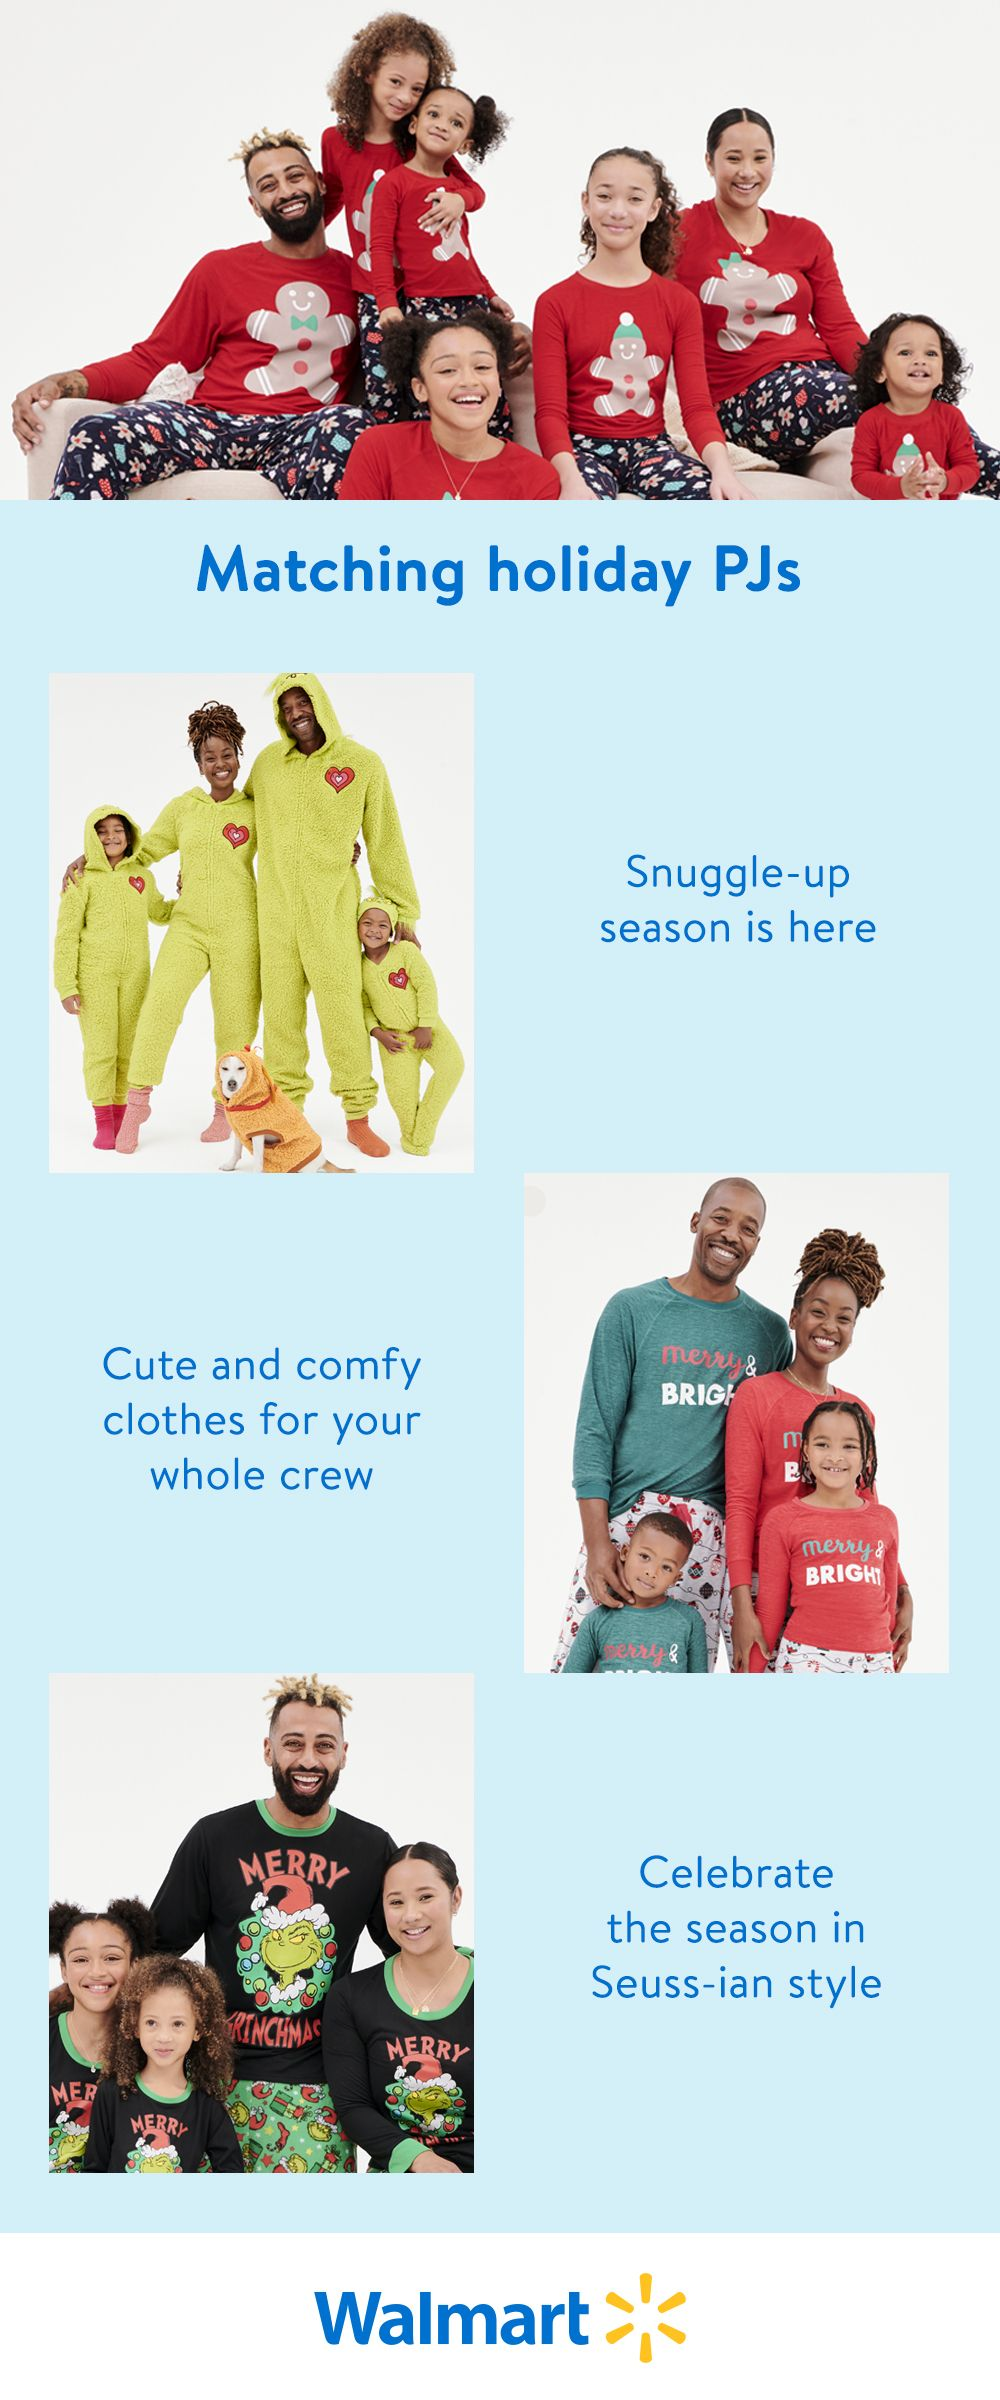 Bring some Christmas cheer and cozy comfort to your home with matching family pajamas. You'll find everyday low prices on colorful PJs for the whole crew at Walmart—in store and online.